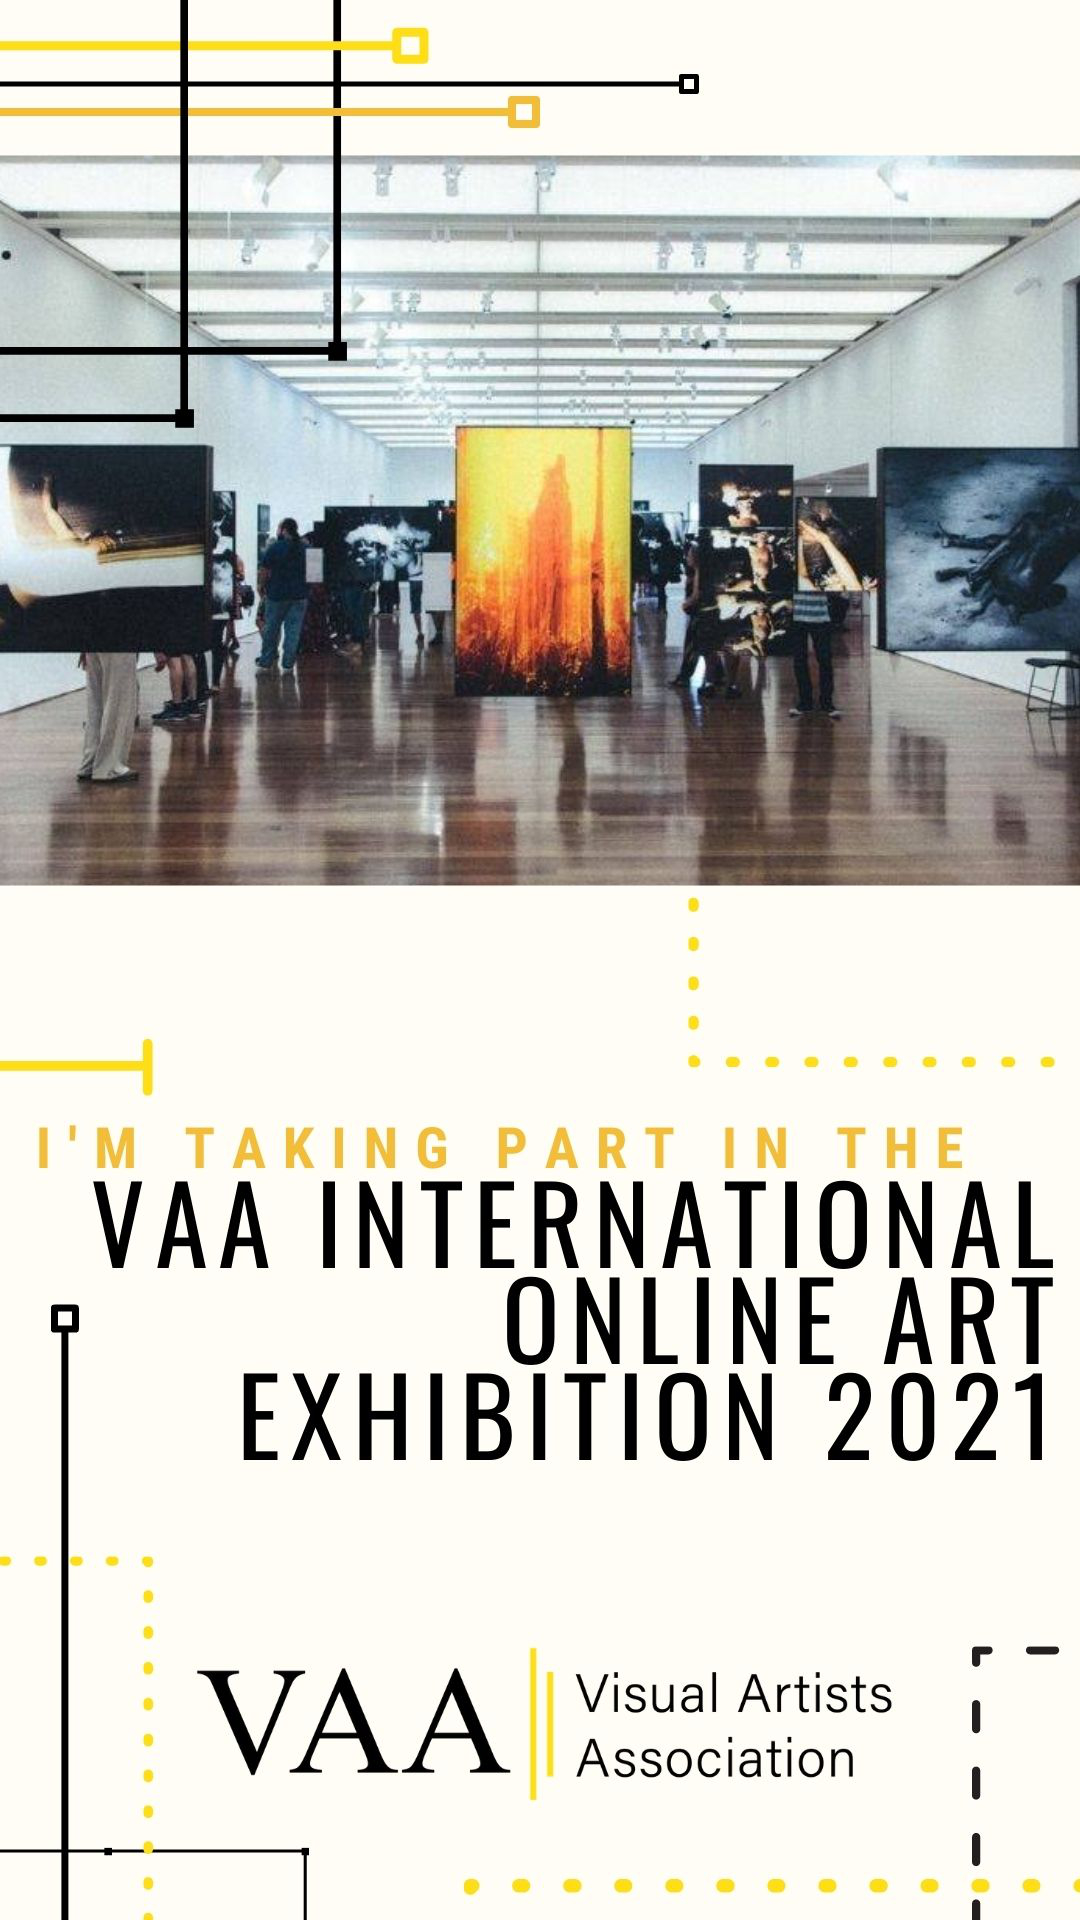 Taking part in the ⟢ VAA Spring Exhibition 2021! ⟣